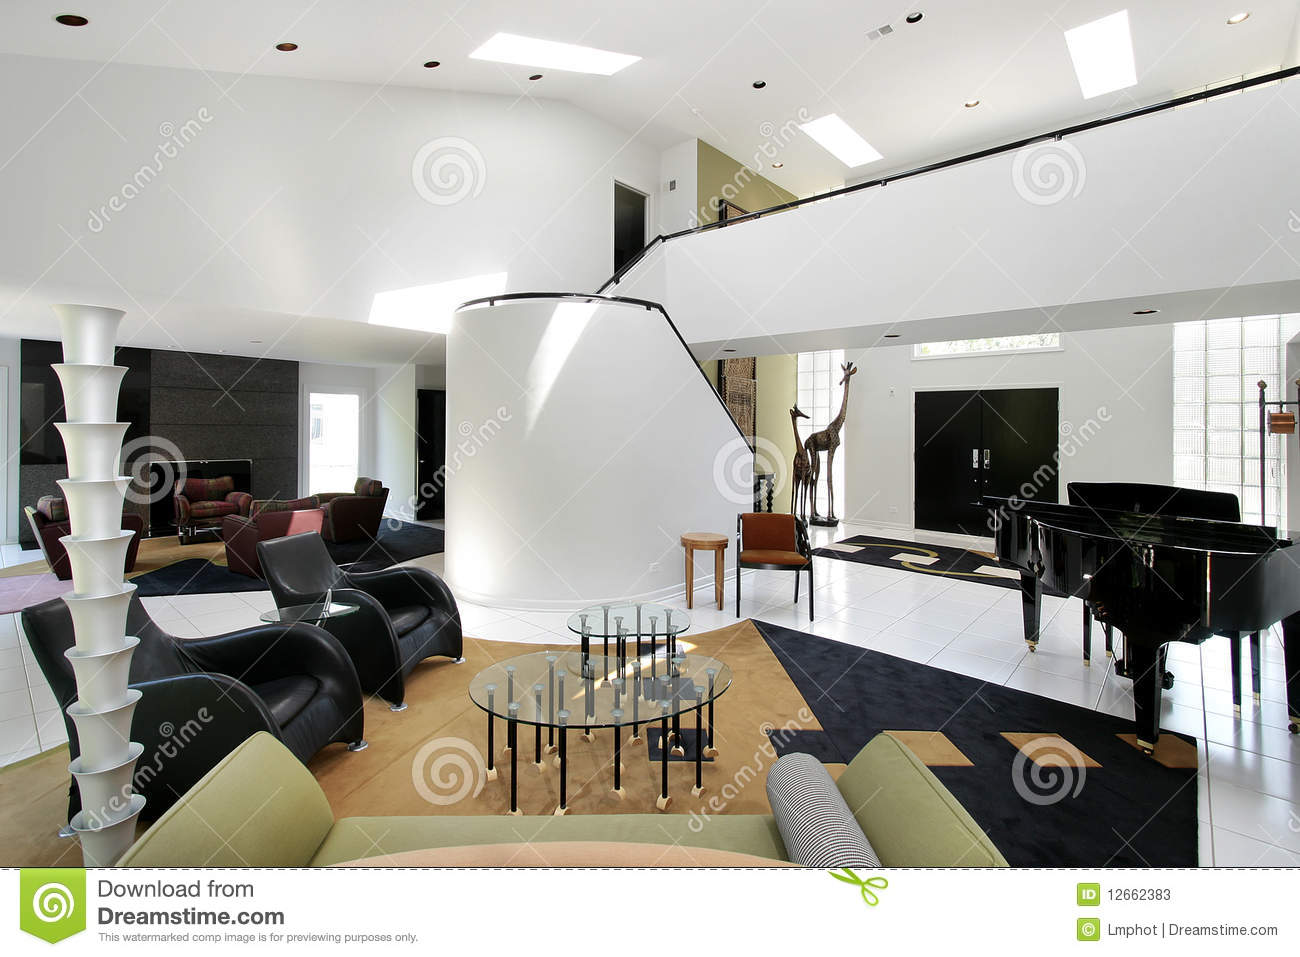 Ultra modern living room stock photos image 12662383 - Ultra modern living room ...